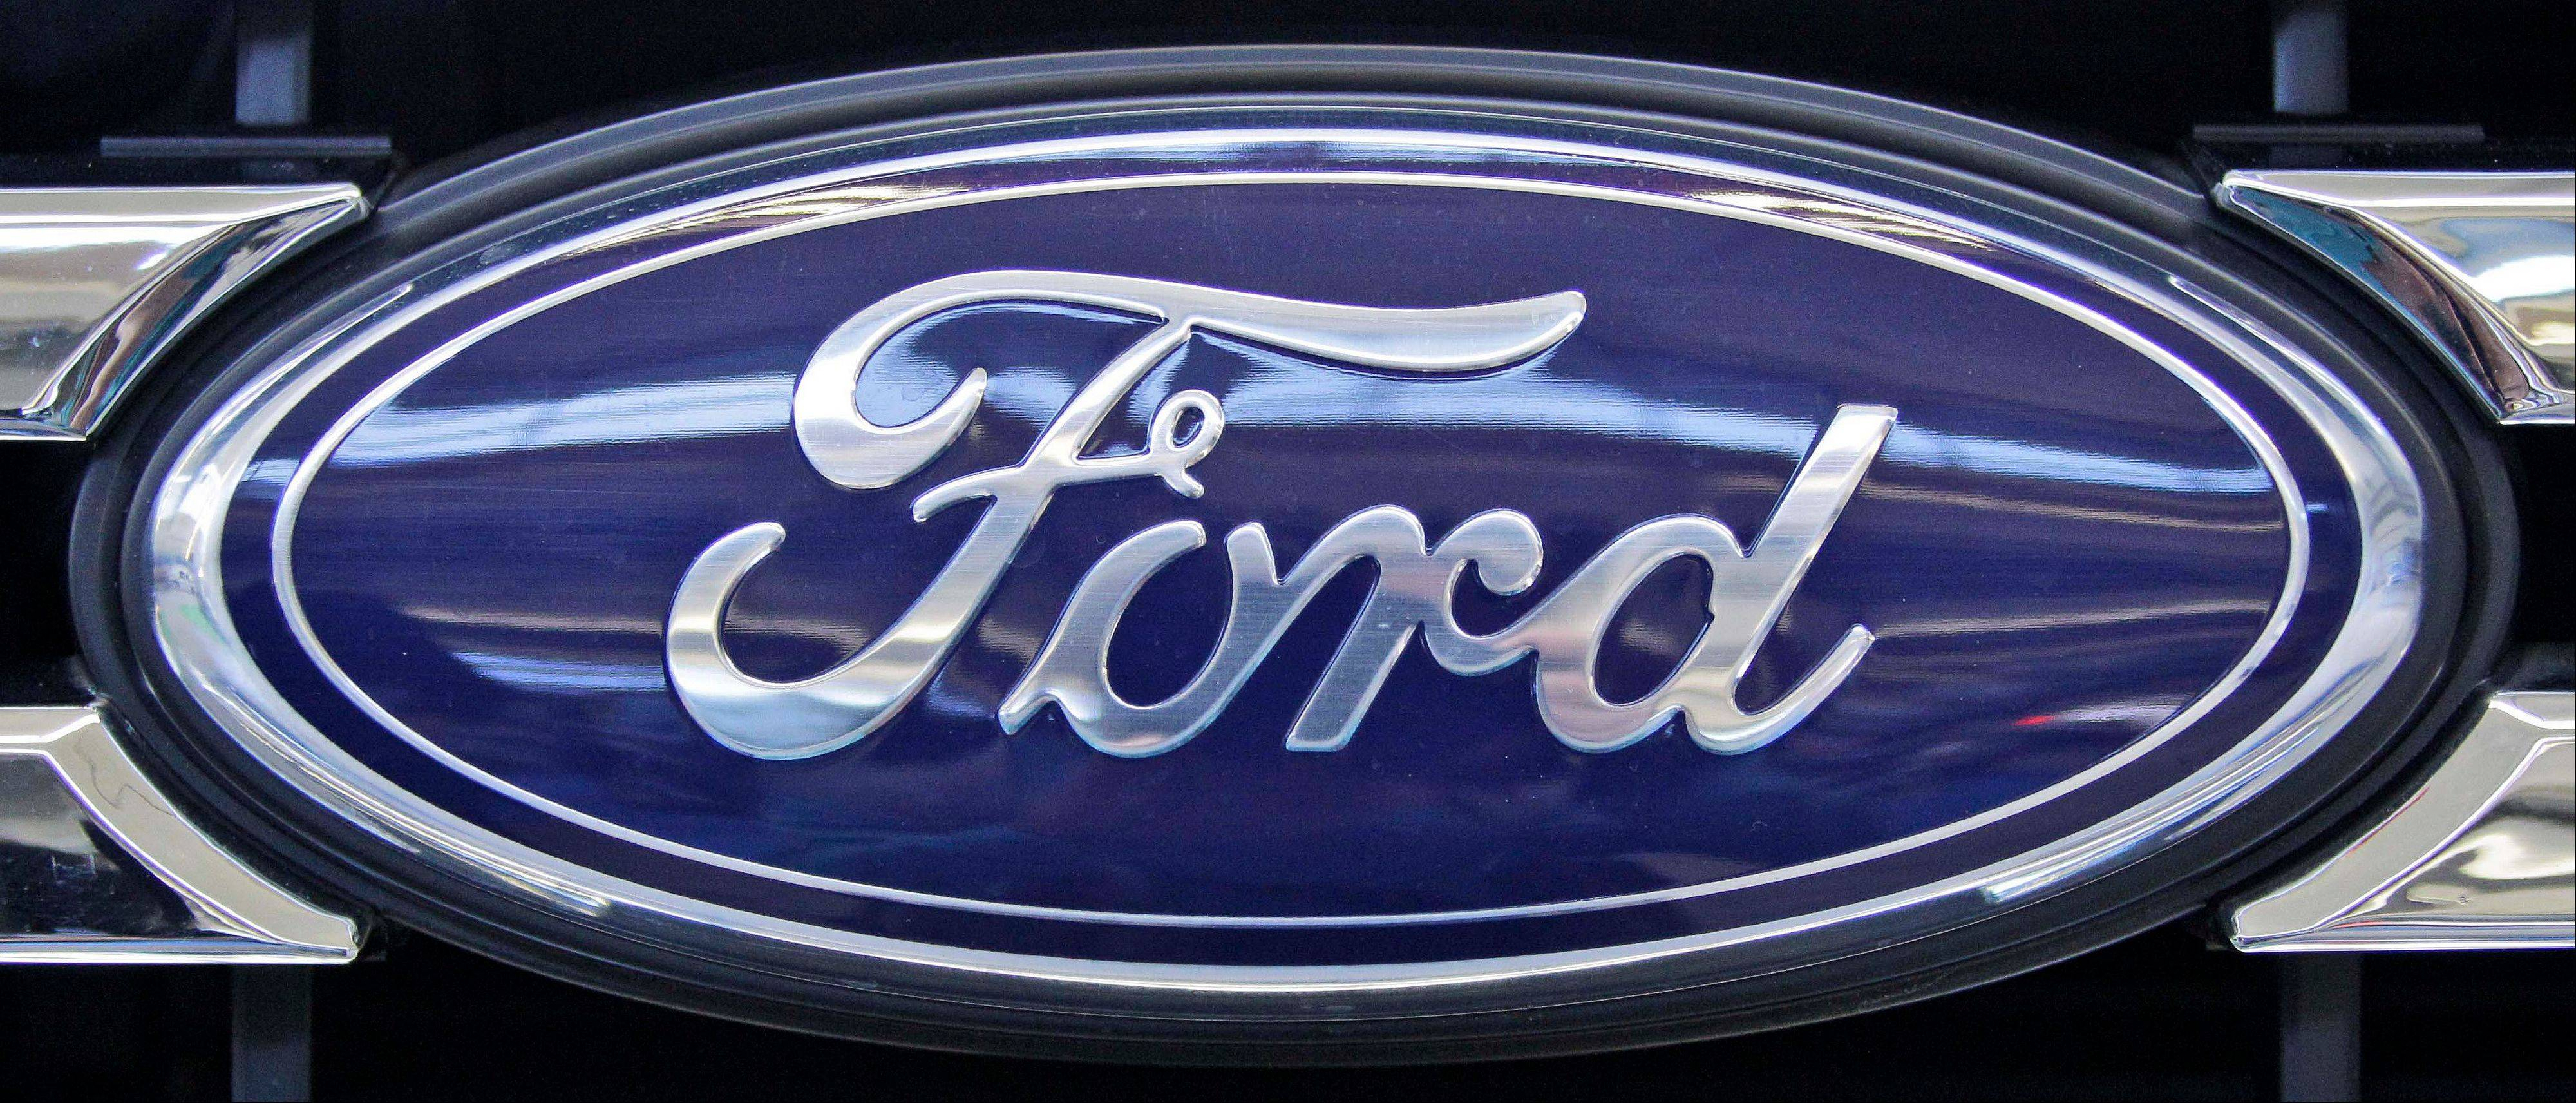 Ford Motor Co. said Thursday that it's adding 2,000 workers to the Missouri plant that makes the F-150 pickup because of surging U.S. truck demand. The company plans to add a shift with 900 workers in the third quarter of this year to make pickups. That's in addition to the 1,100 workers Ford will hire to make the new Transit van. Those workers will start in the fourth quarter.